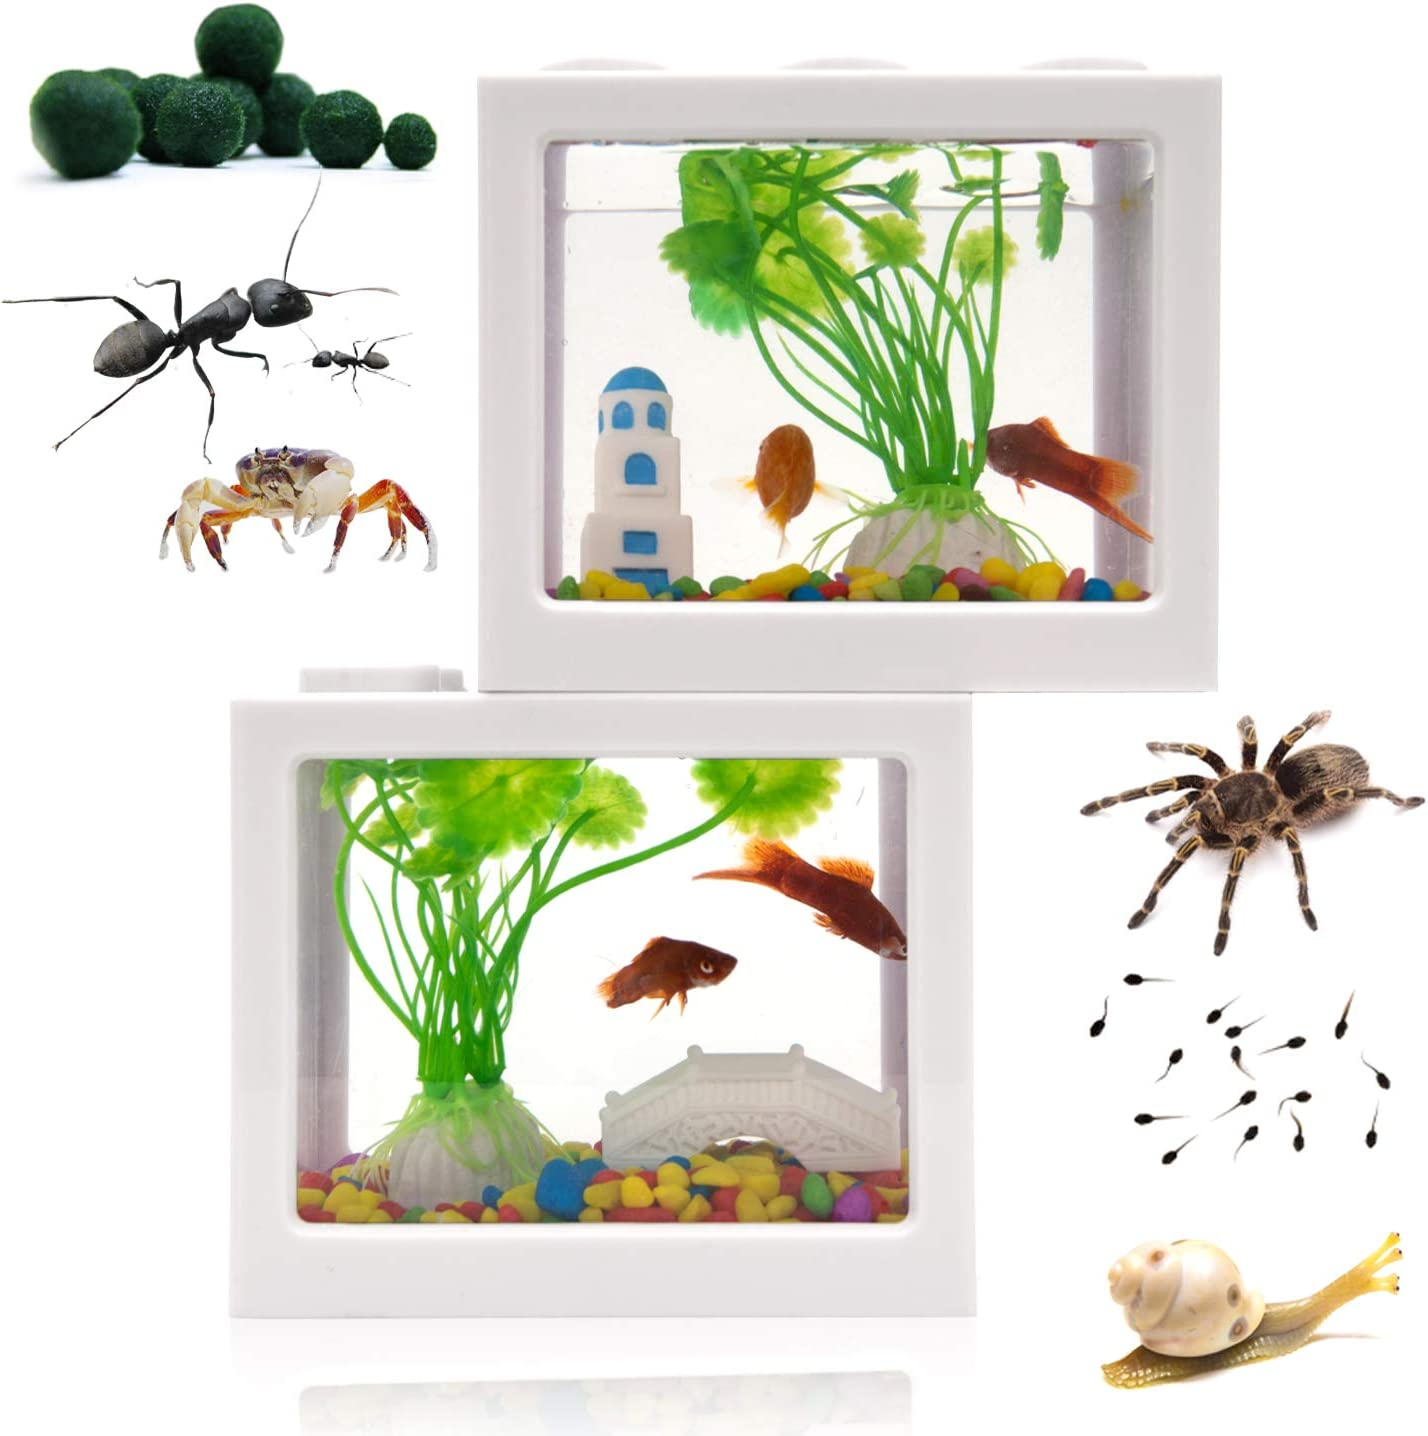 Amazon Com Small Betta Fish Tank Fish Bow Aquarium With Gravel Plants Rocks Feeder Small Fish Tank For Turtle Reptile Jellyfish Goldfish Shrimp Moss Balls Insects Table Decoration Box 2pack Small Size White